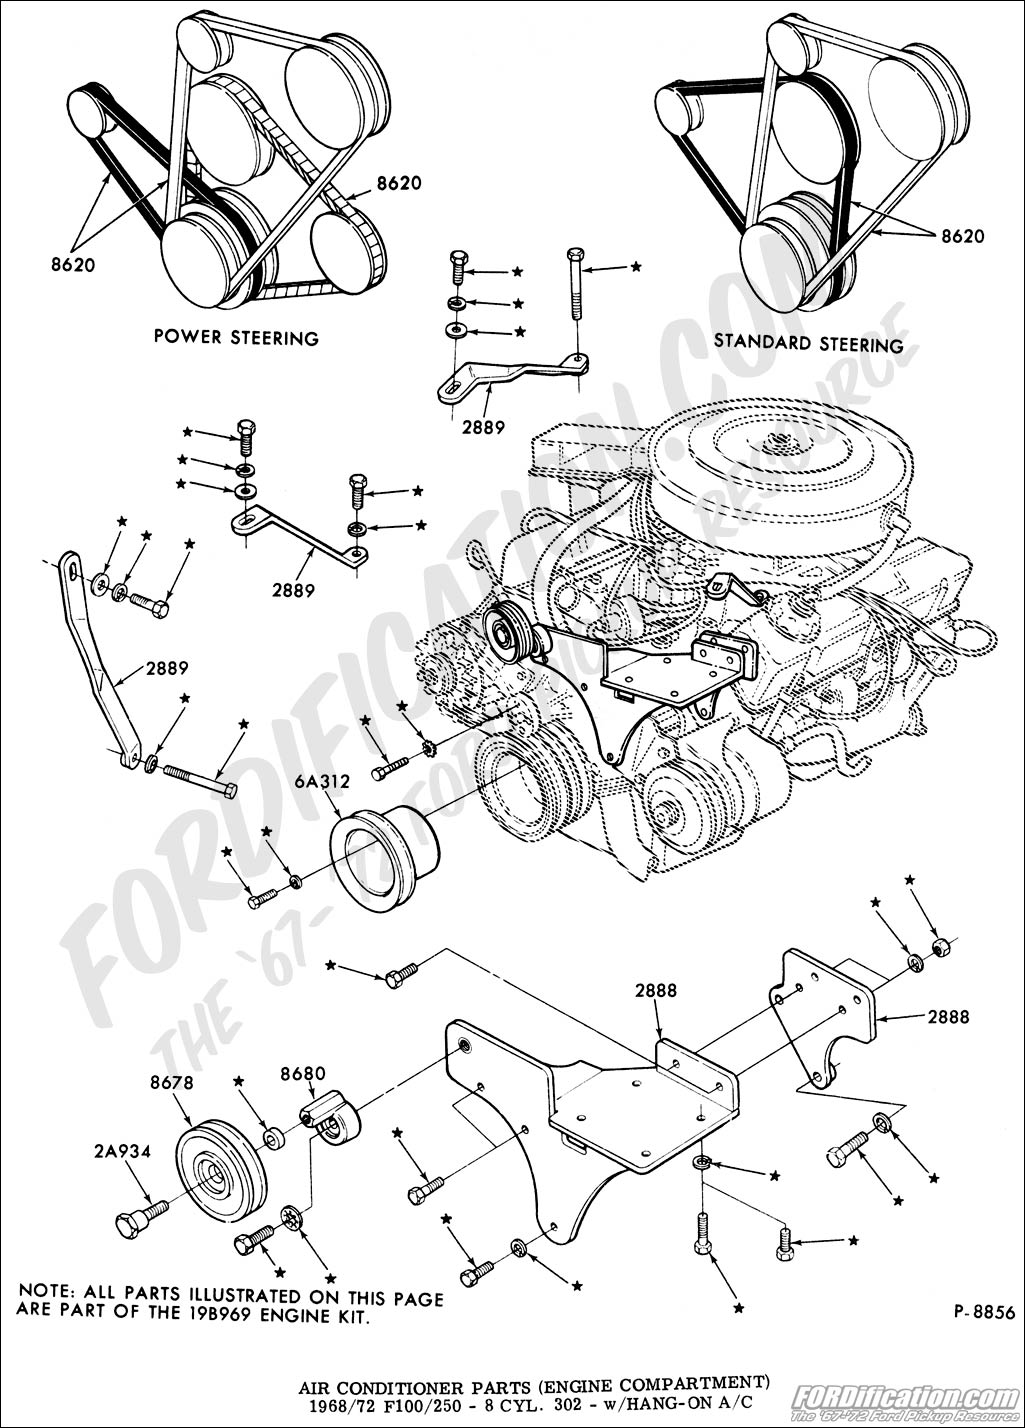 1971 Ford 302 Engine Diagram Free Wiring For You 1972 Mustang 1995 300 6 1998 Motor